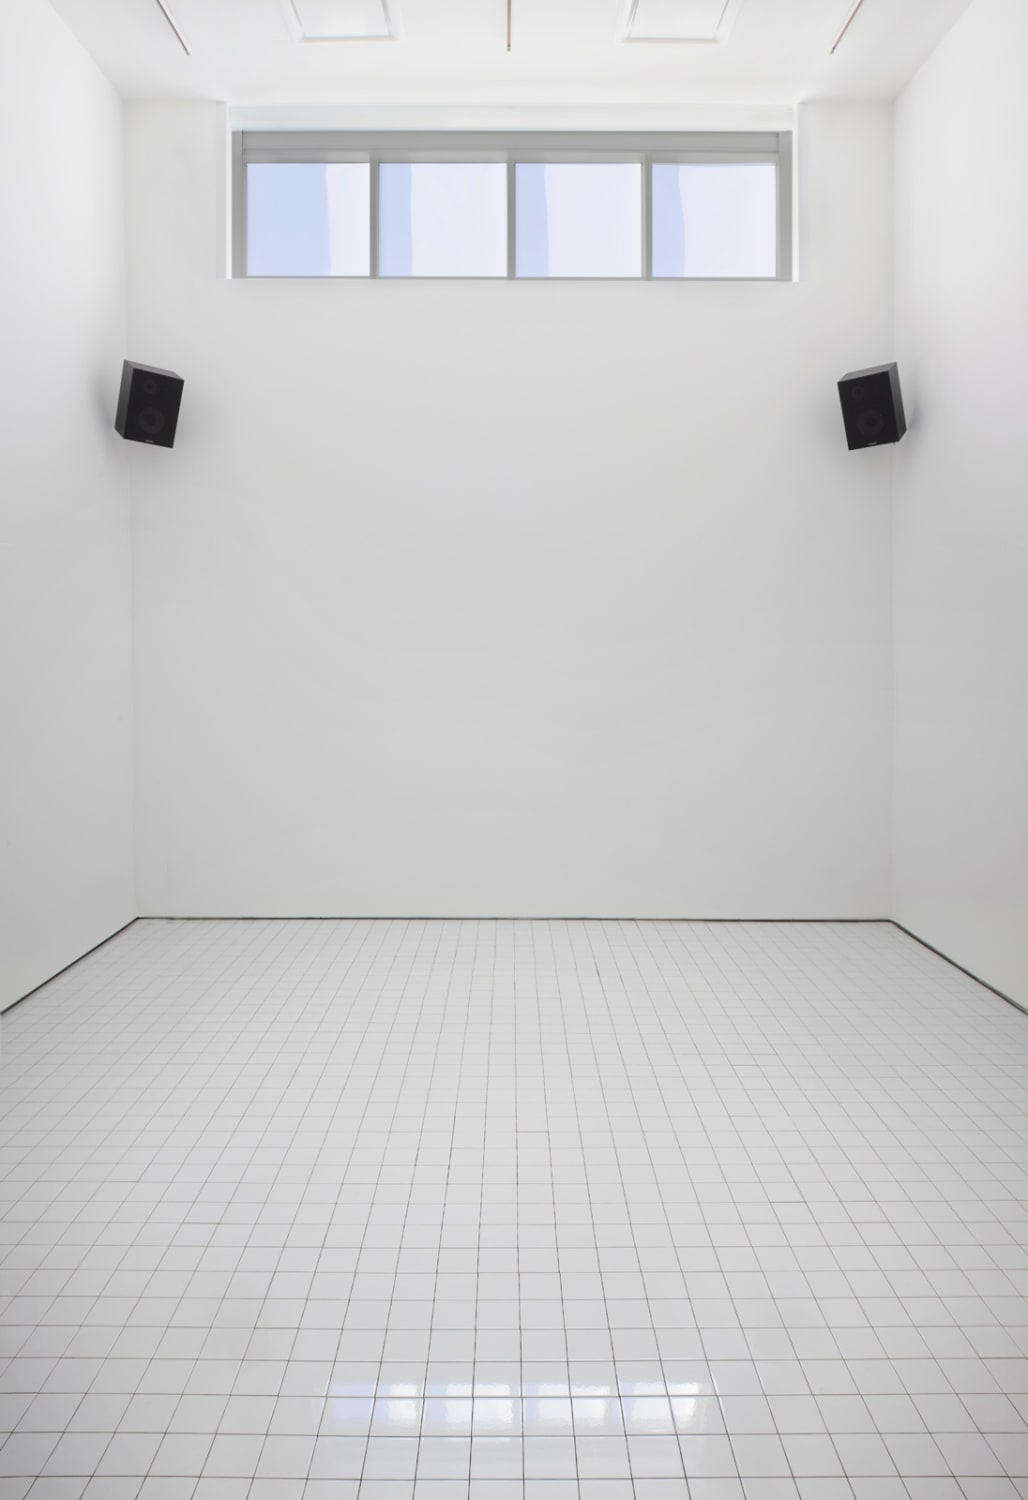 Drowning (Installation View) Marianne Boesky Gallery, New York, 2011